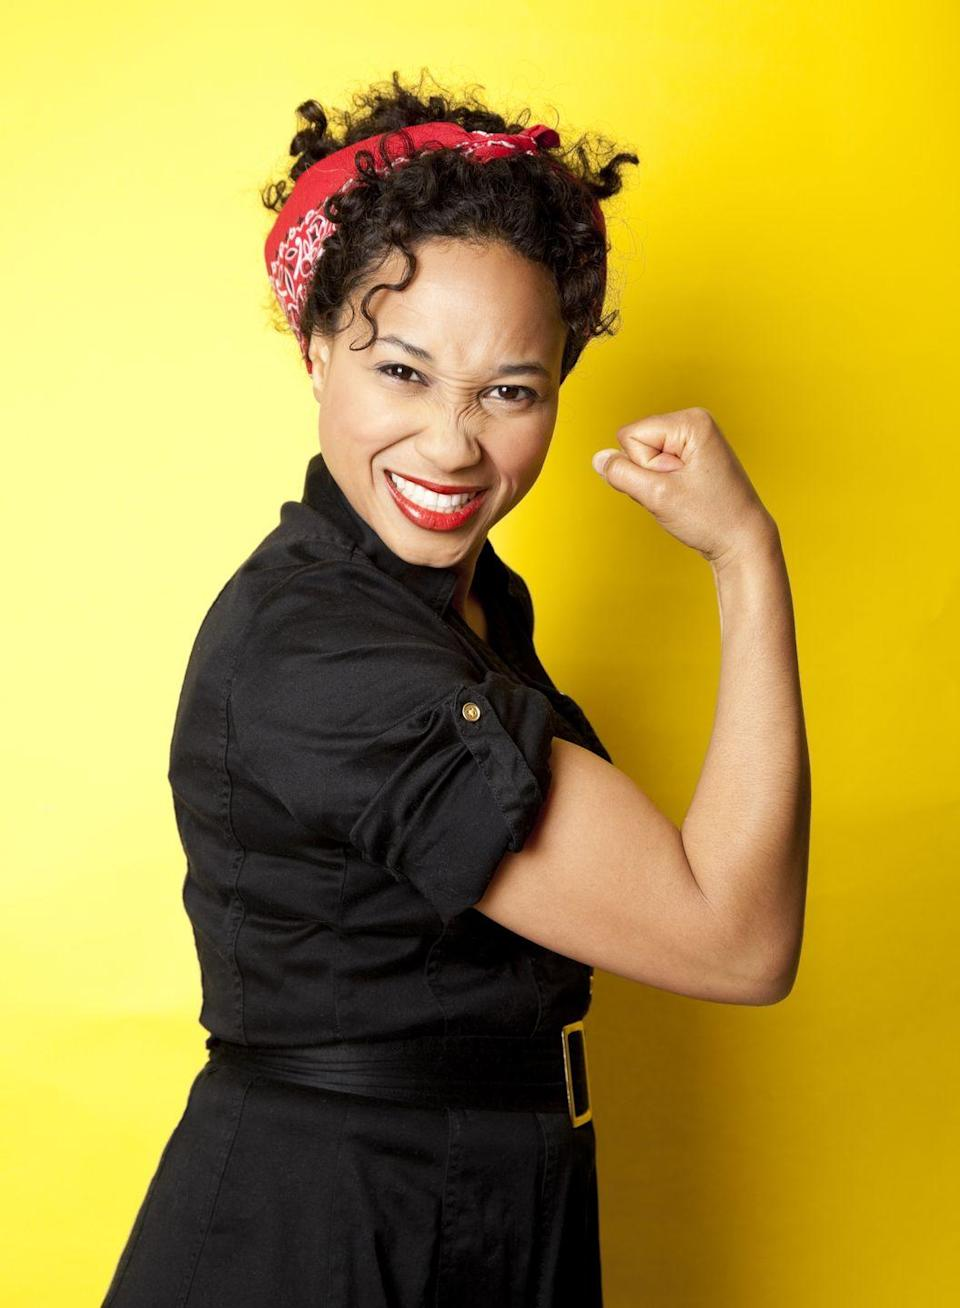 """<p>A WWII culture icon, Rosie the Riveter is one of the easiest costumes to make last minute. All you need is a denim shirt and a red bandana headband. </p><p><a class=""""link rapid-noclick-resp"""" href=""""https://www.amazon.com/Shimmer-Anna-Shine-Matching-Headbands/dp/B07BDQS331/?tag=syn-yahoo-20&ascsubtag=%5Bartid%7C10070.g.490%5Bsrc%7Cyahoo-us"""" rel=""""nofollow noopener"""" target=""""_blank"""" data-ylk=""""slk:SHOP BANDANAS"""">SHOP BANDANAS</a></p>"""